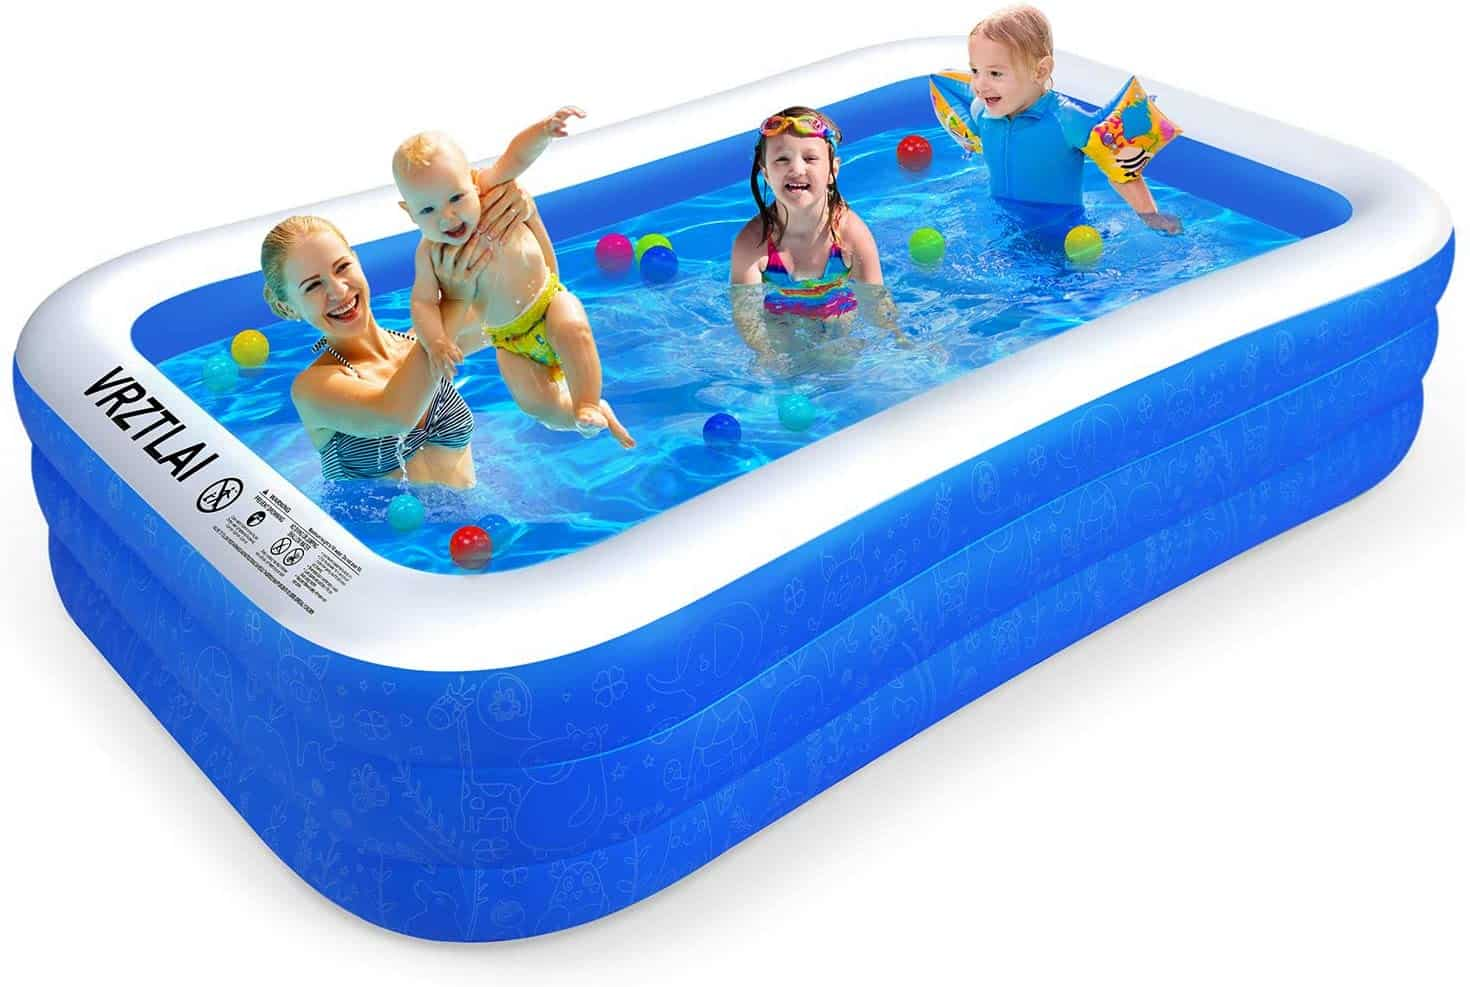 VRZTLAI Family Inflatable Swimming Pool